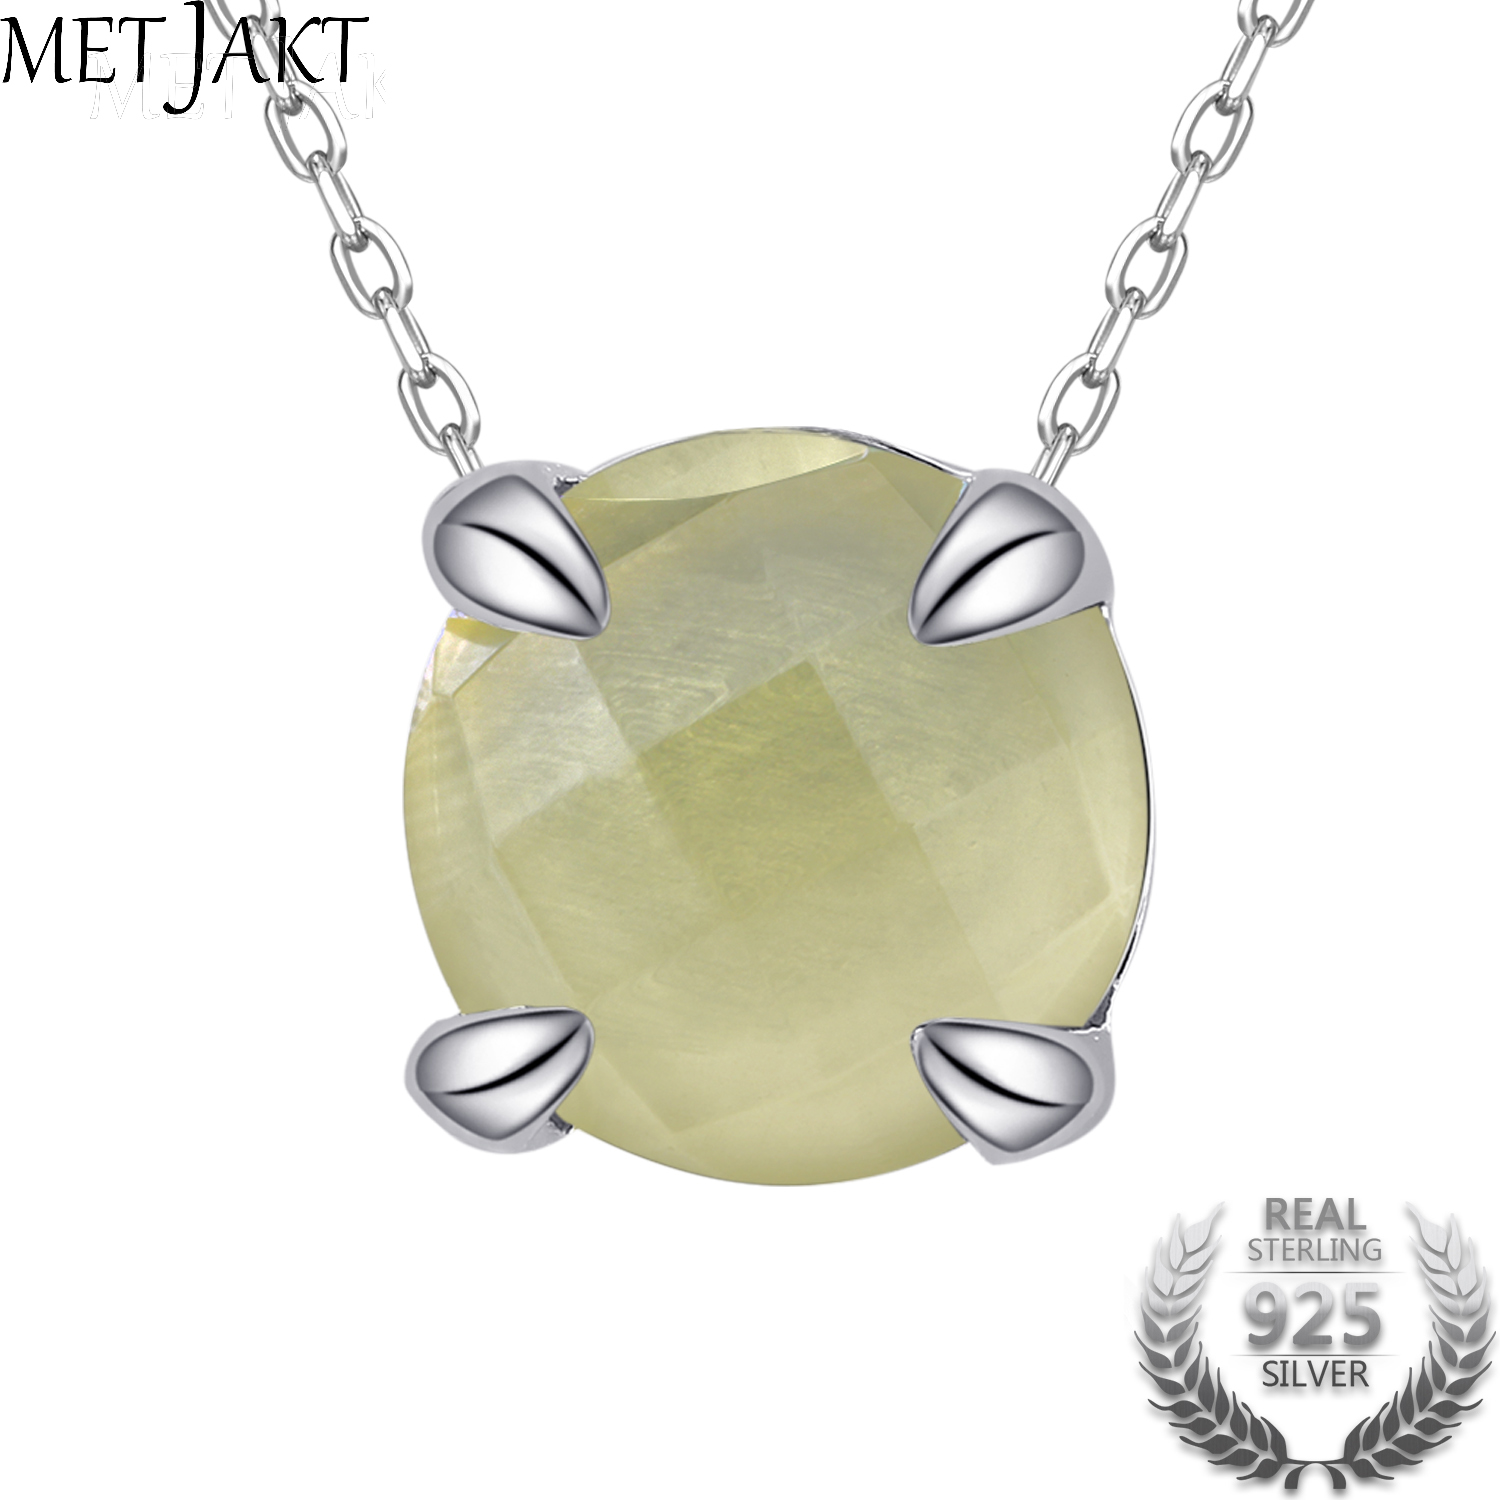 MetJakt Classic Natural Gemstone Citrine Pendant Necklace Solid Adjustable S925 Sterling Silver Chain for Women s